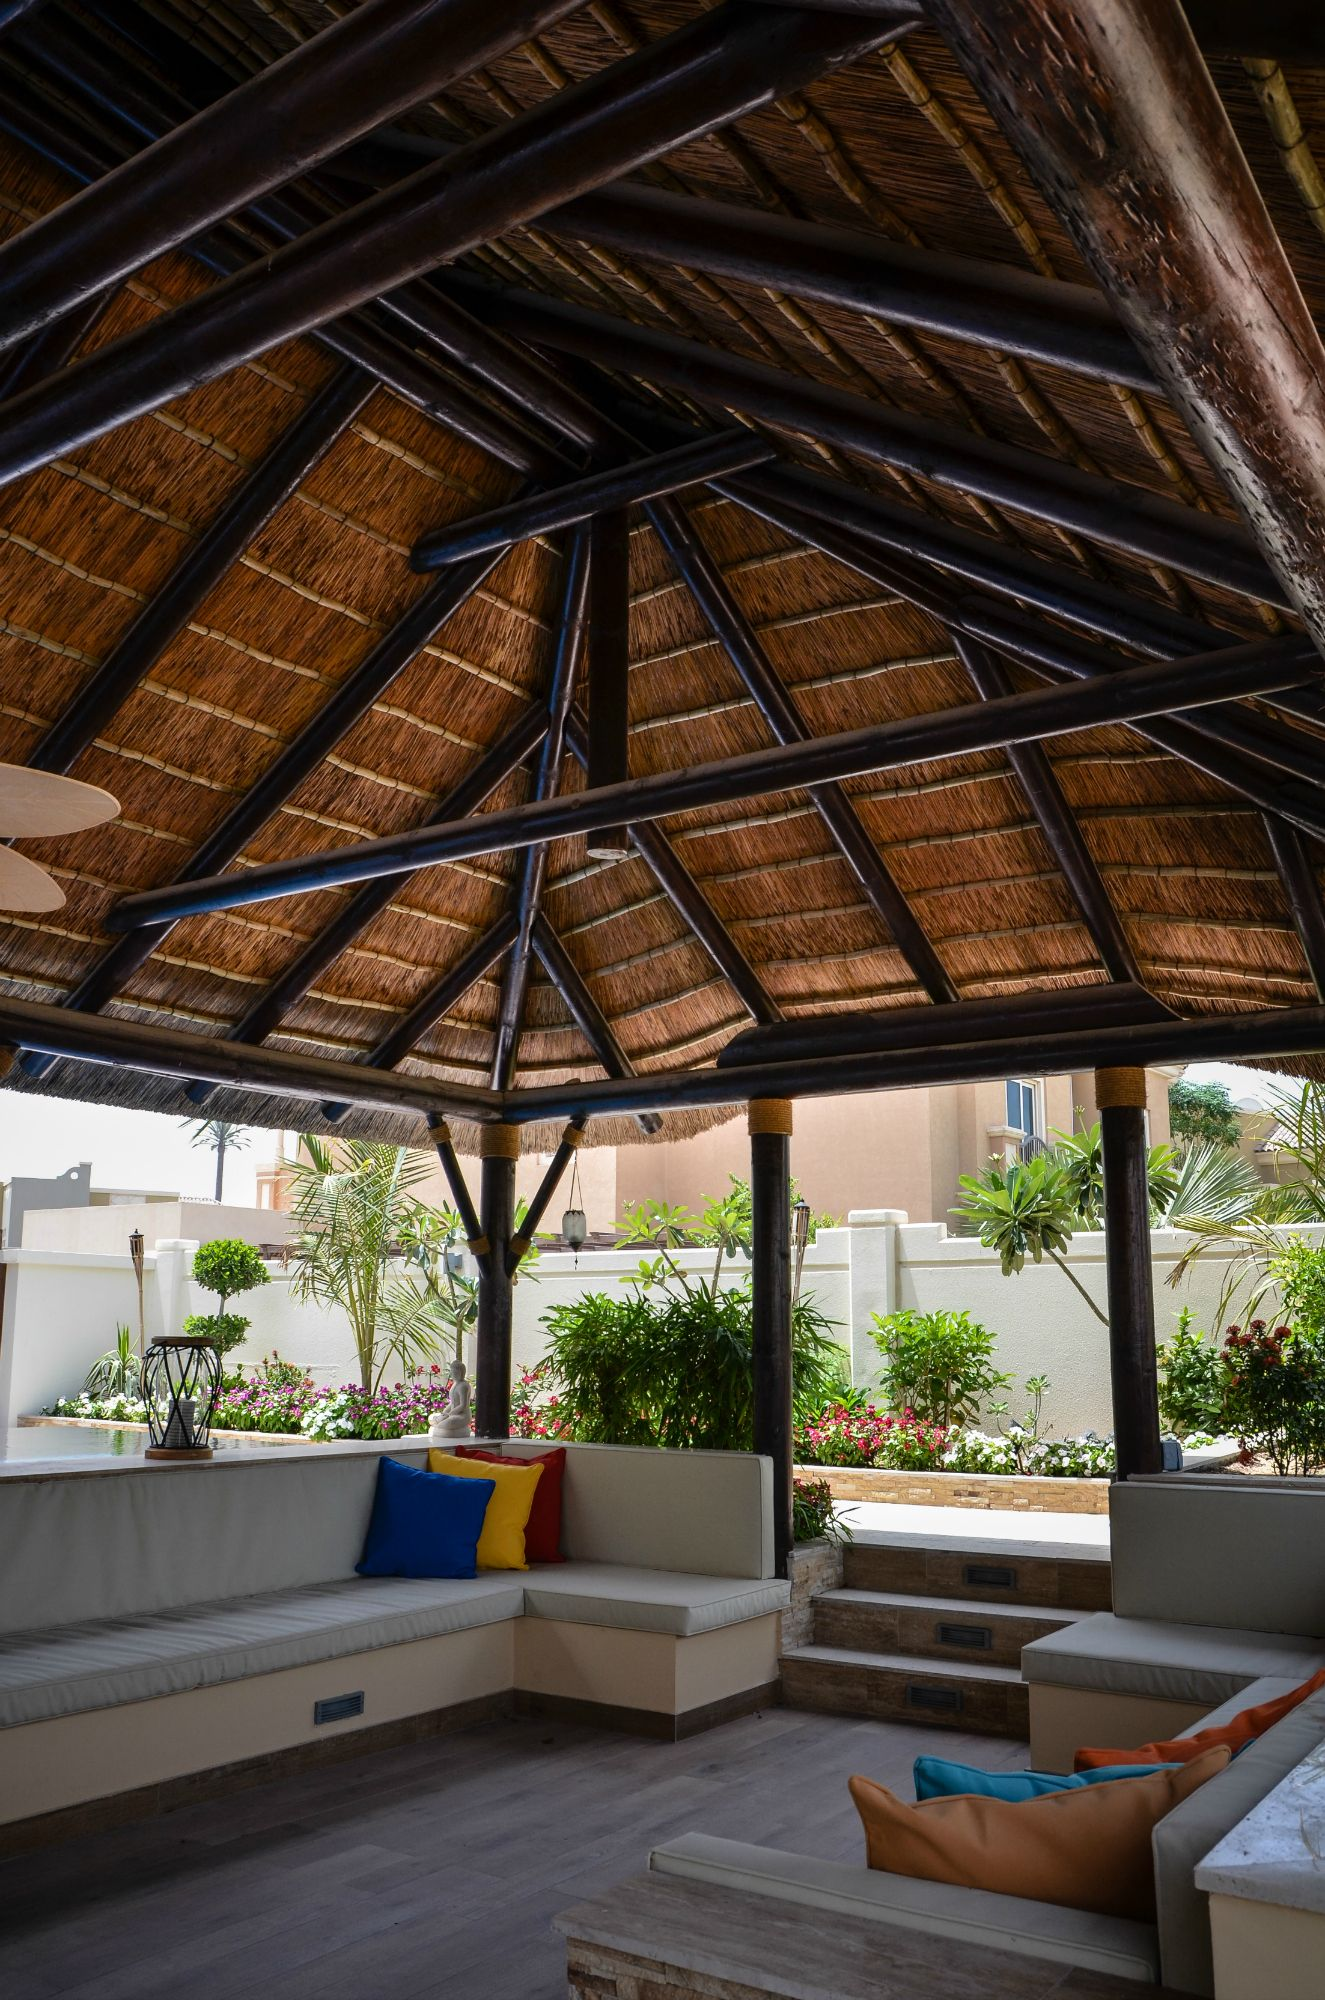 A beautifully thatched roof covers a plush seating corner and outdoor kitchen dining area perfect for alfresco dining or relaxing next to the pool by